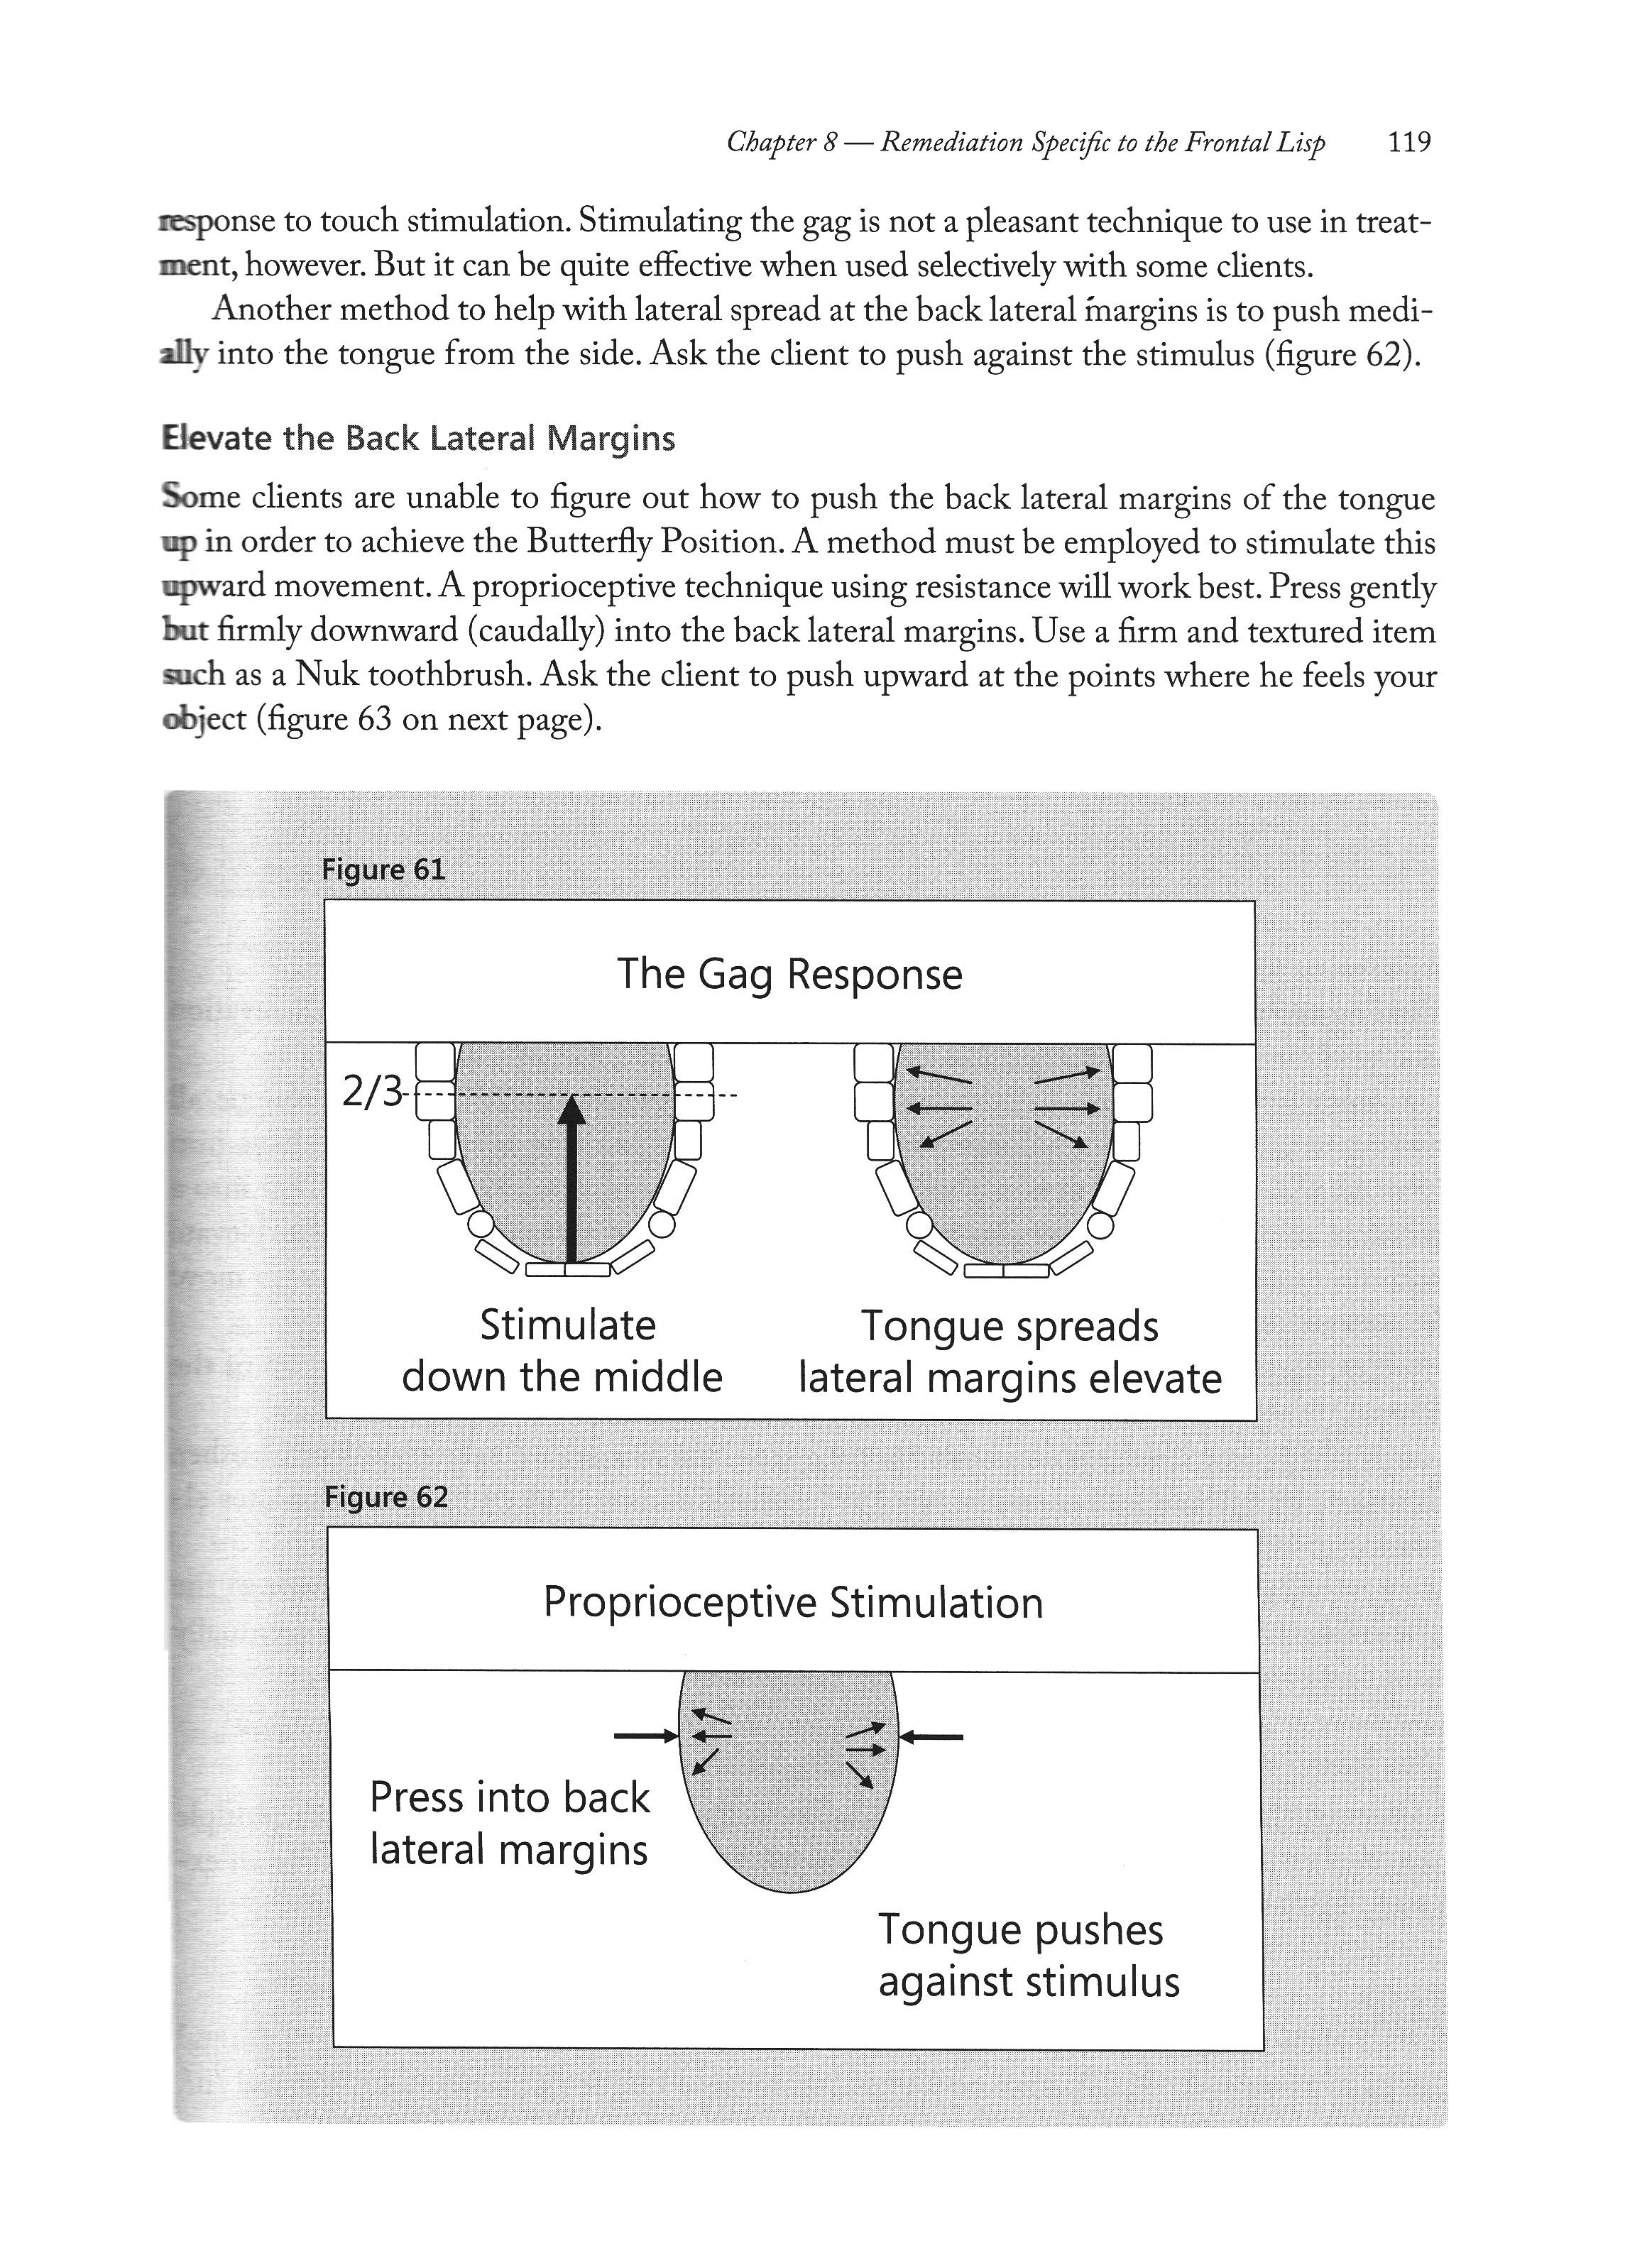 Gag response / Proprioceptive Stimulation from Frontal Lisp, Lateral ...